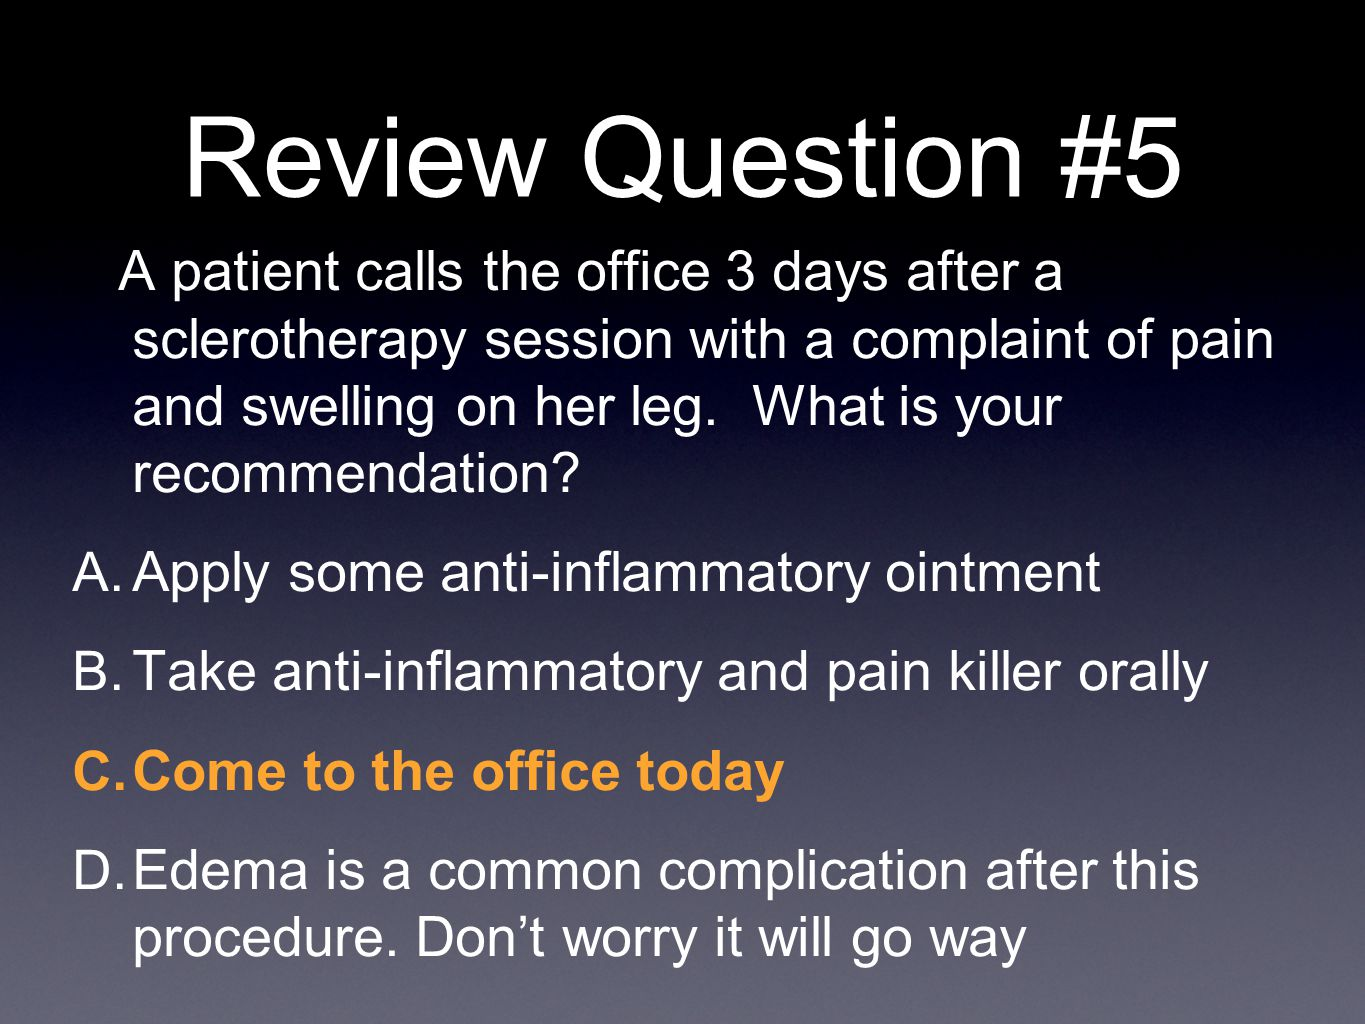 Review Question #5 A patient calls the office 3 days after a sclerotherapy session with a complaint of pain and swelling on her leg. What is your reco